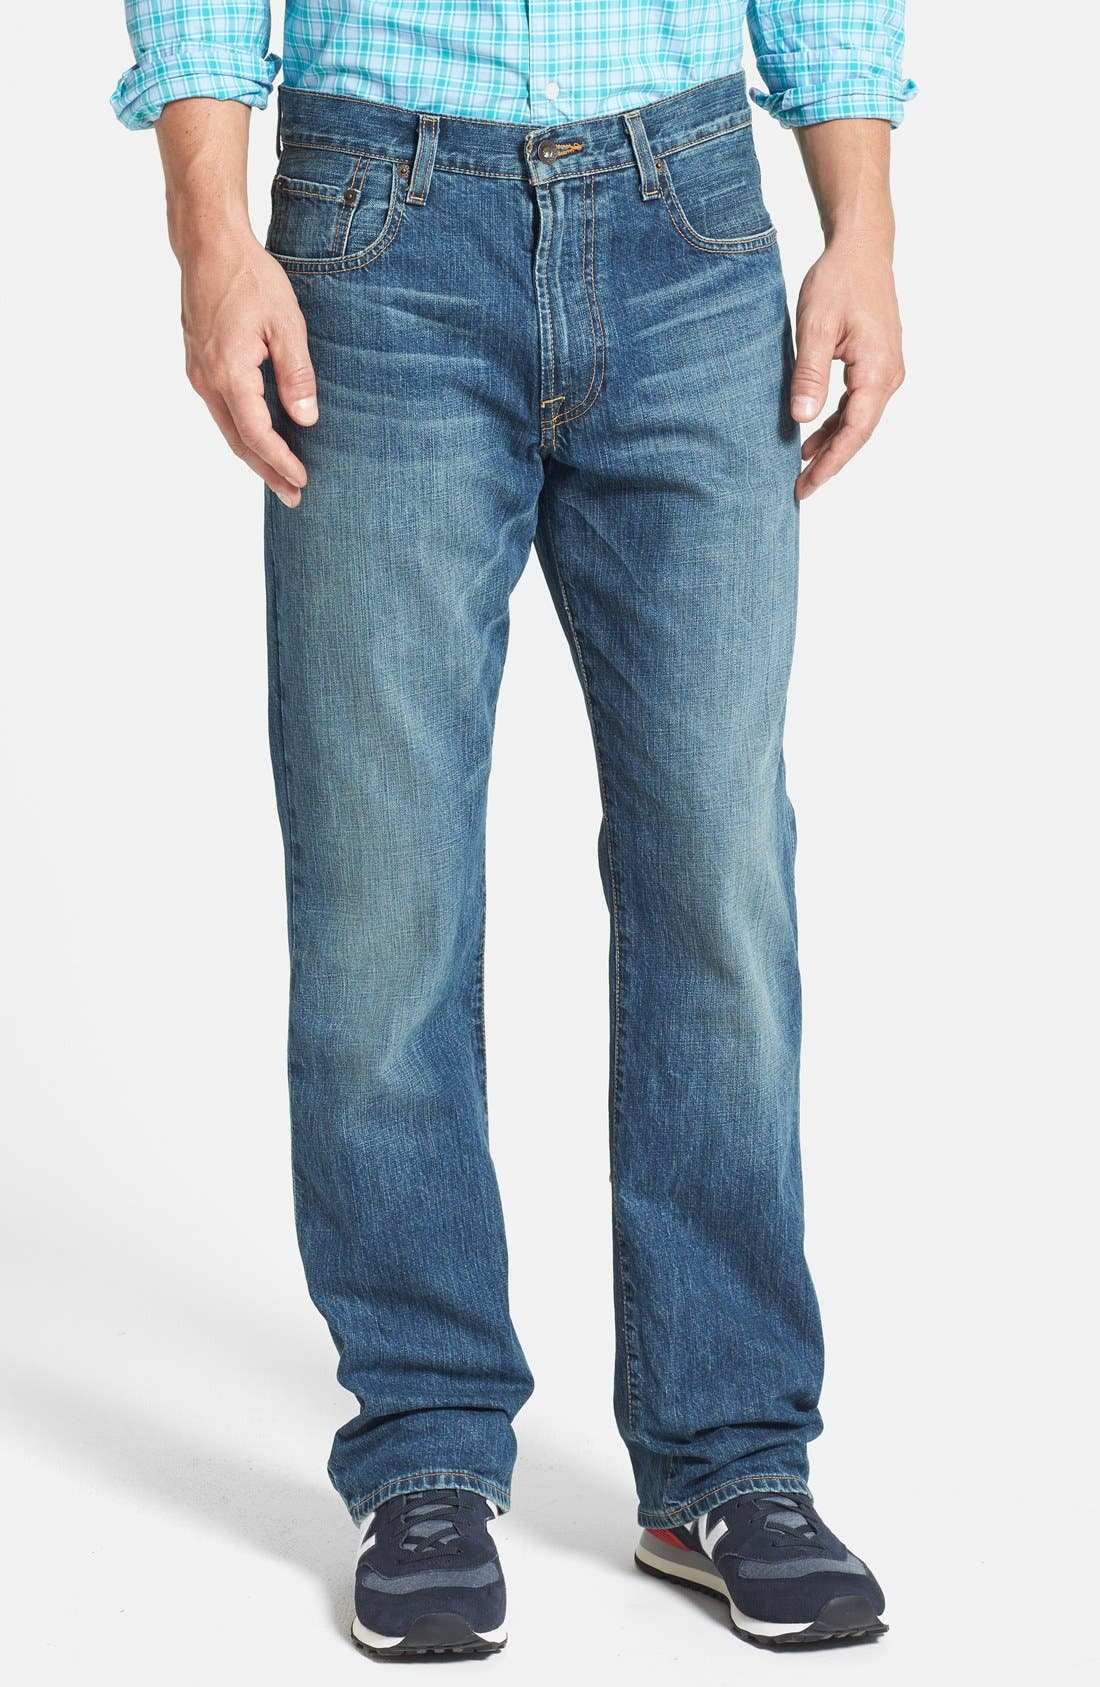 Alternate Image 1 Selected - Lucky Brand '181' Relaxed Fit Jeans (Dellwood) (Online Only)